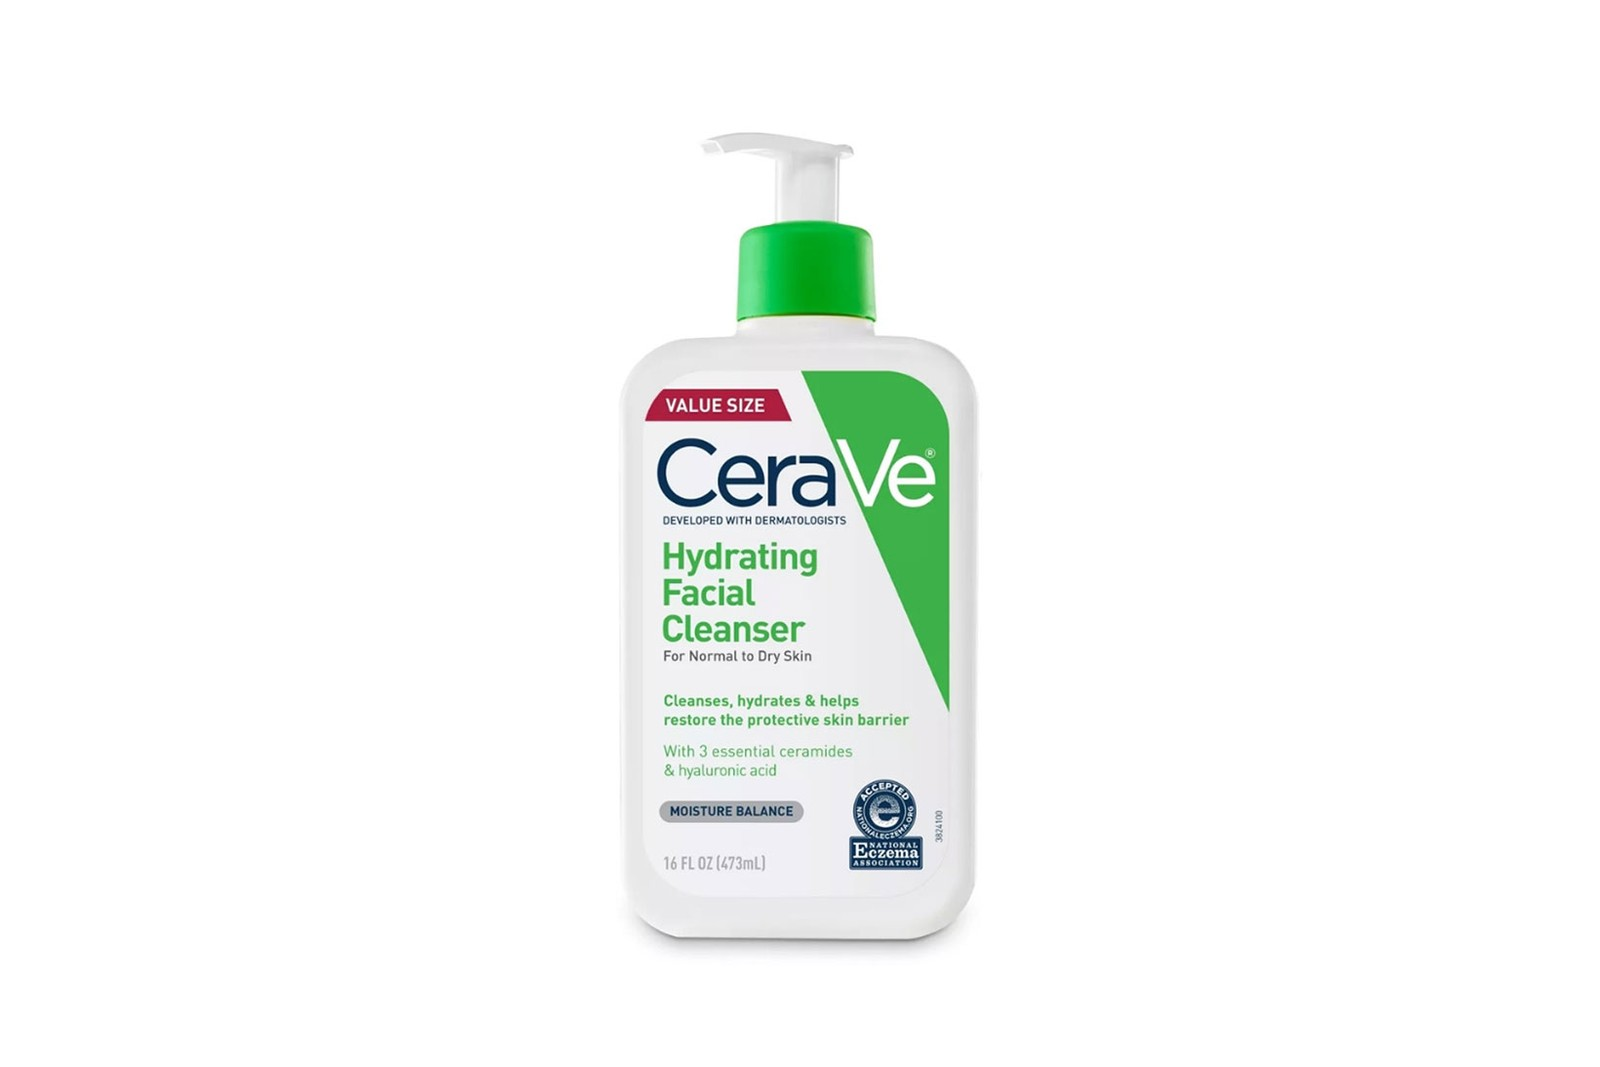 cerave hydrating facial cleanser skincare face wash